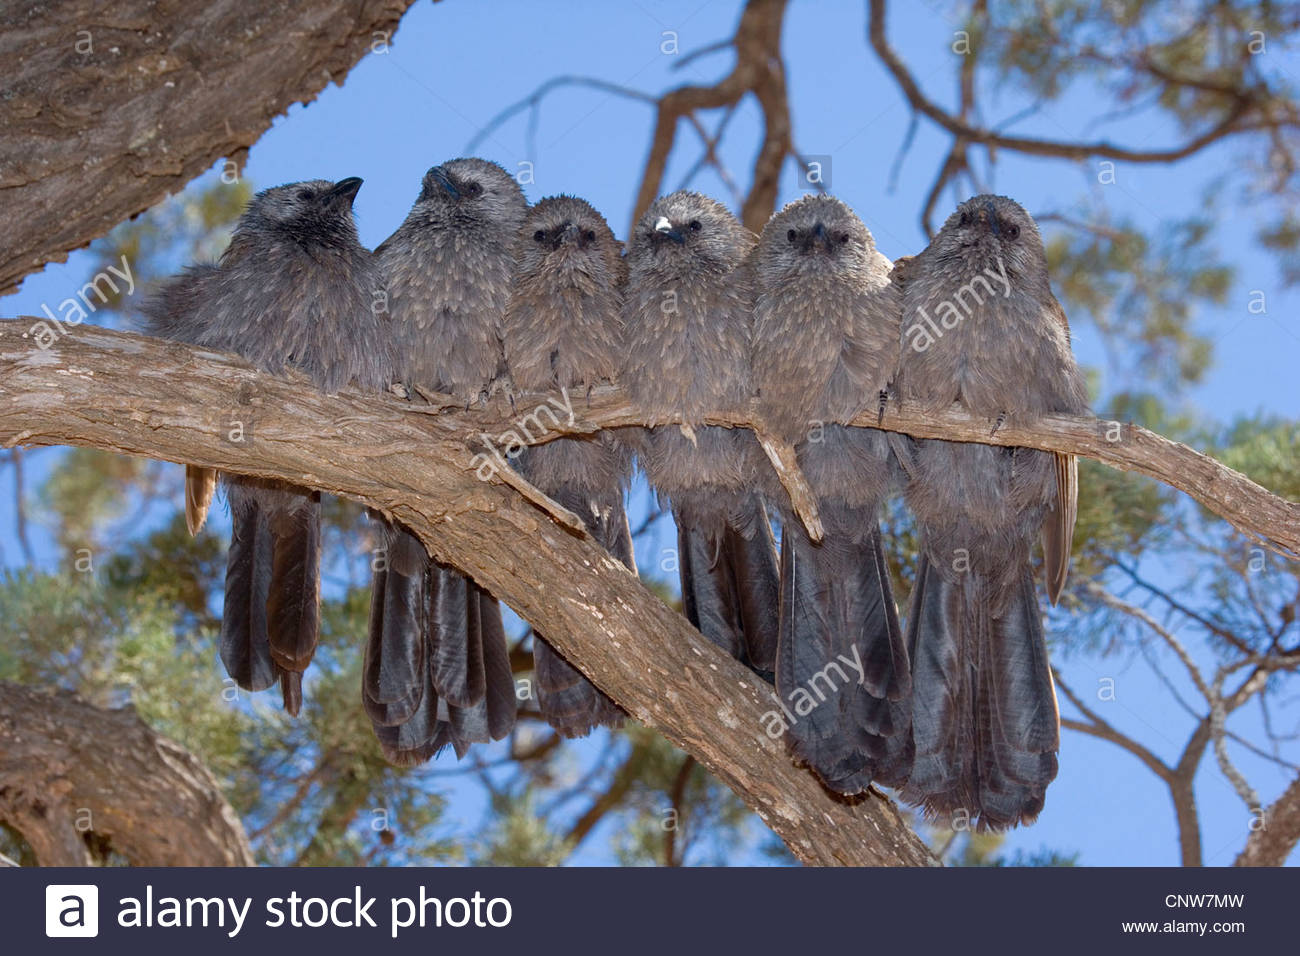 Apostlebird (Struthidea cinerea), six individuals sit tightly pressed together side by side on a tree branch , Australia, - Stock Image